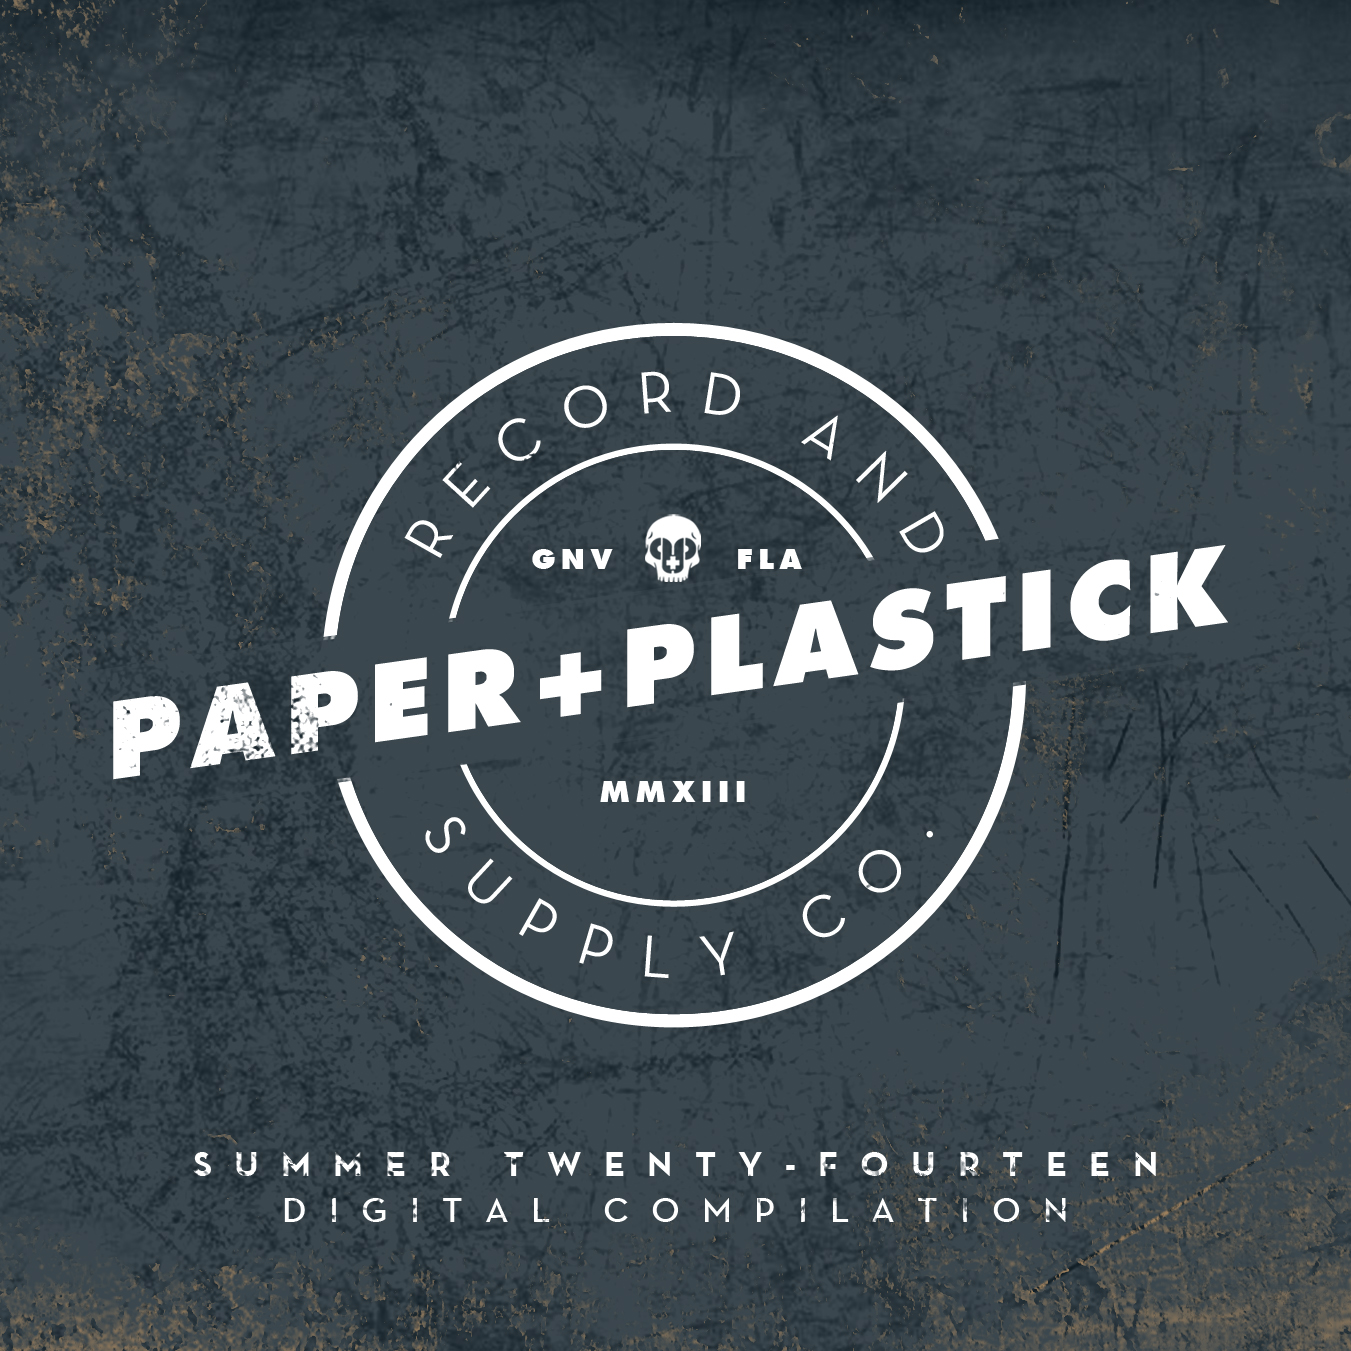 Paper + Plastick Summer Digital Compilation 2014